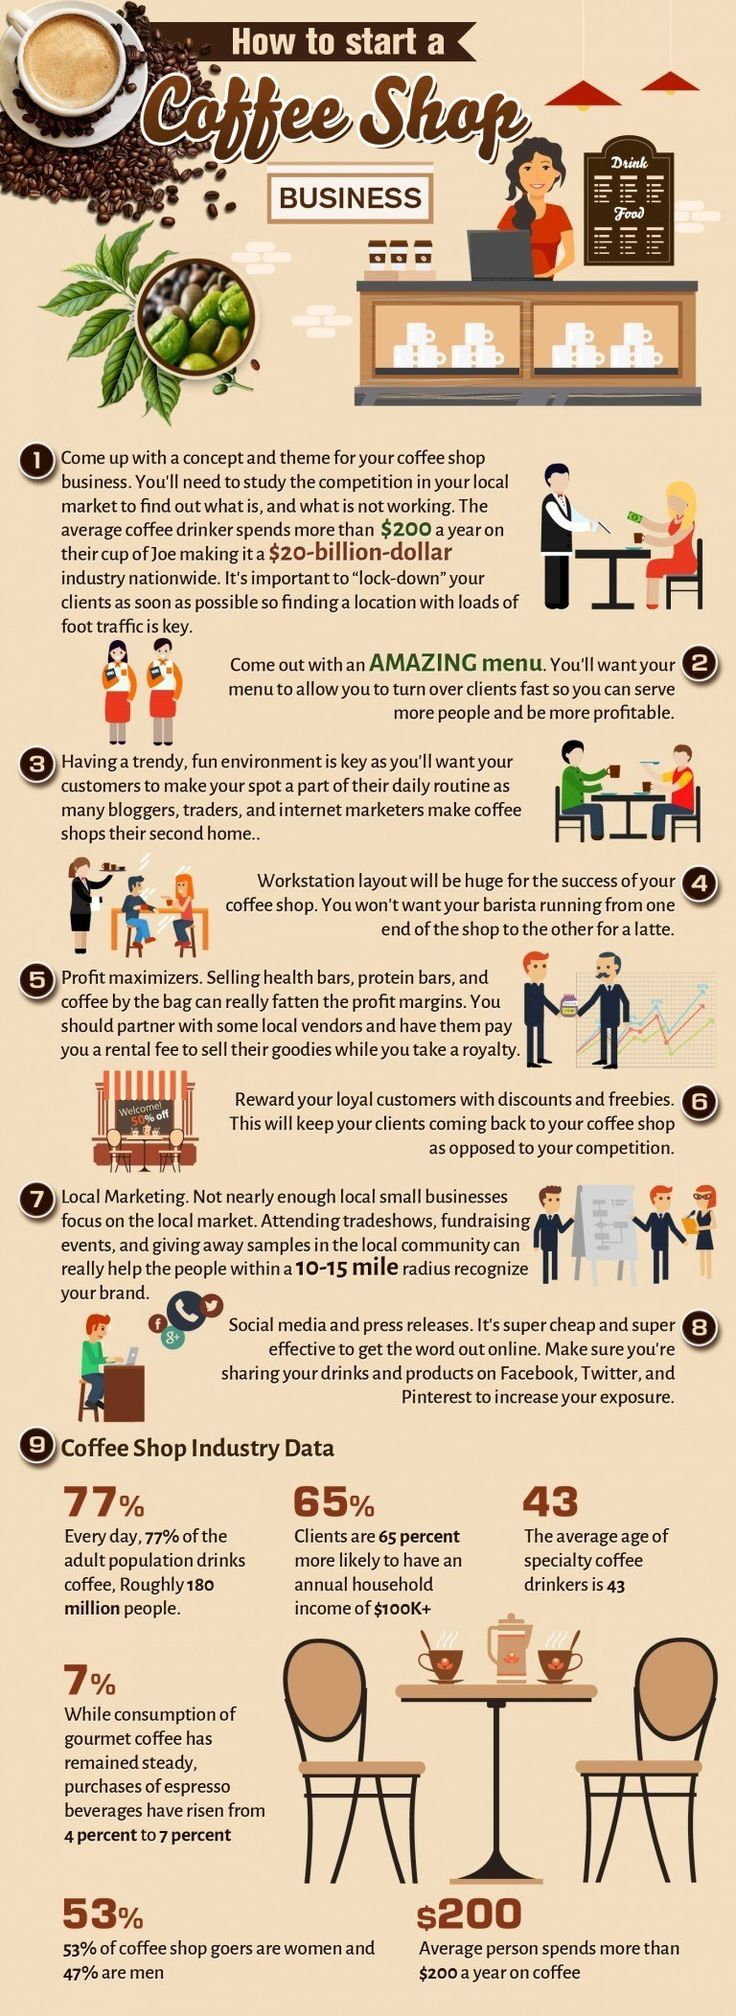 Business plan cafe. How to make a business plan cafe 61